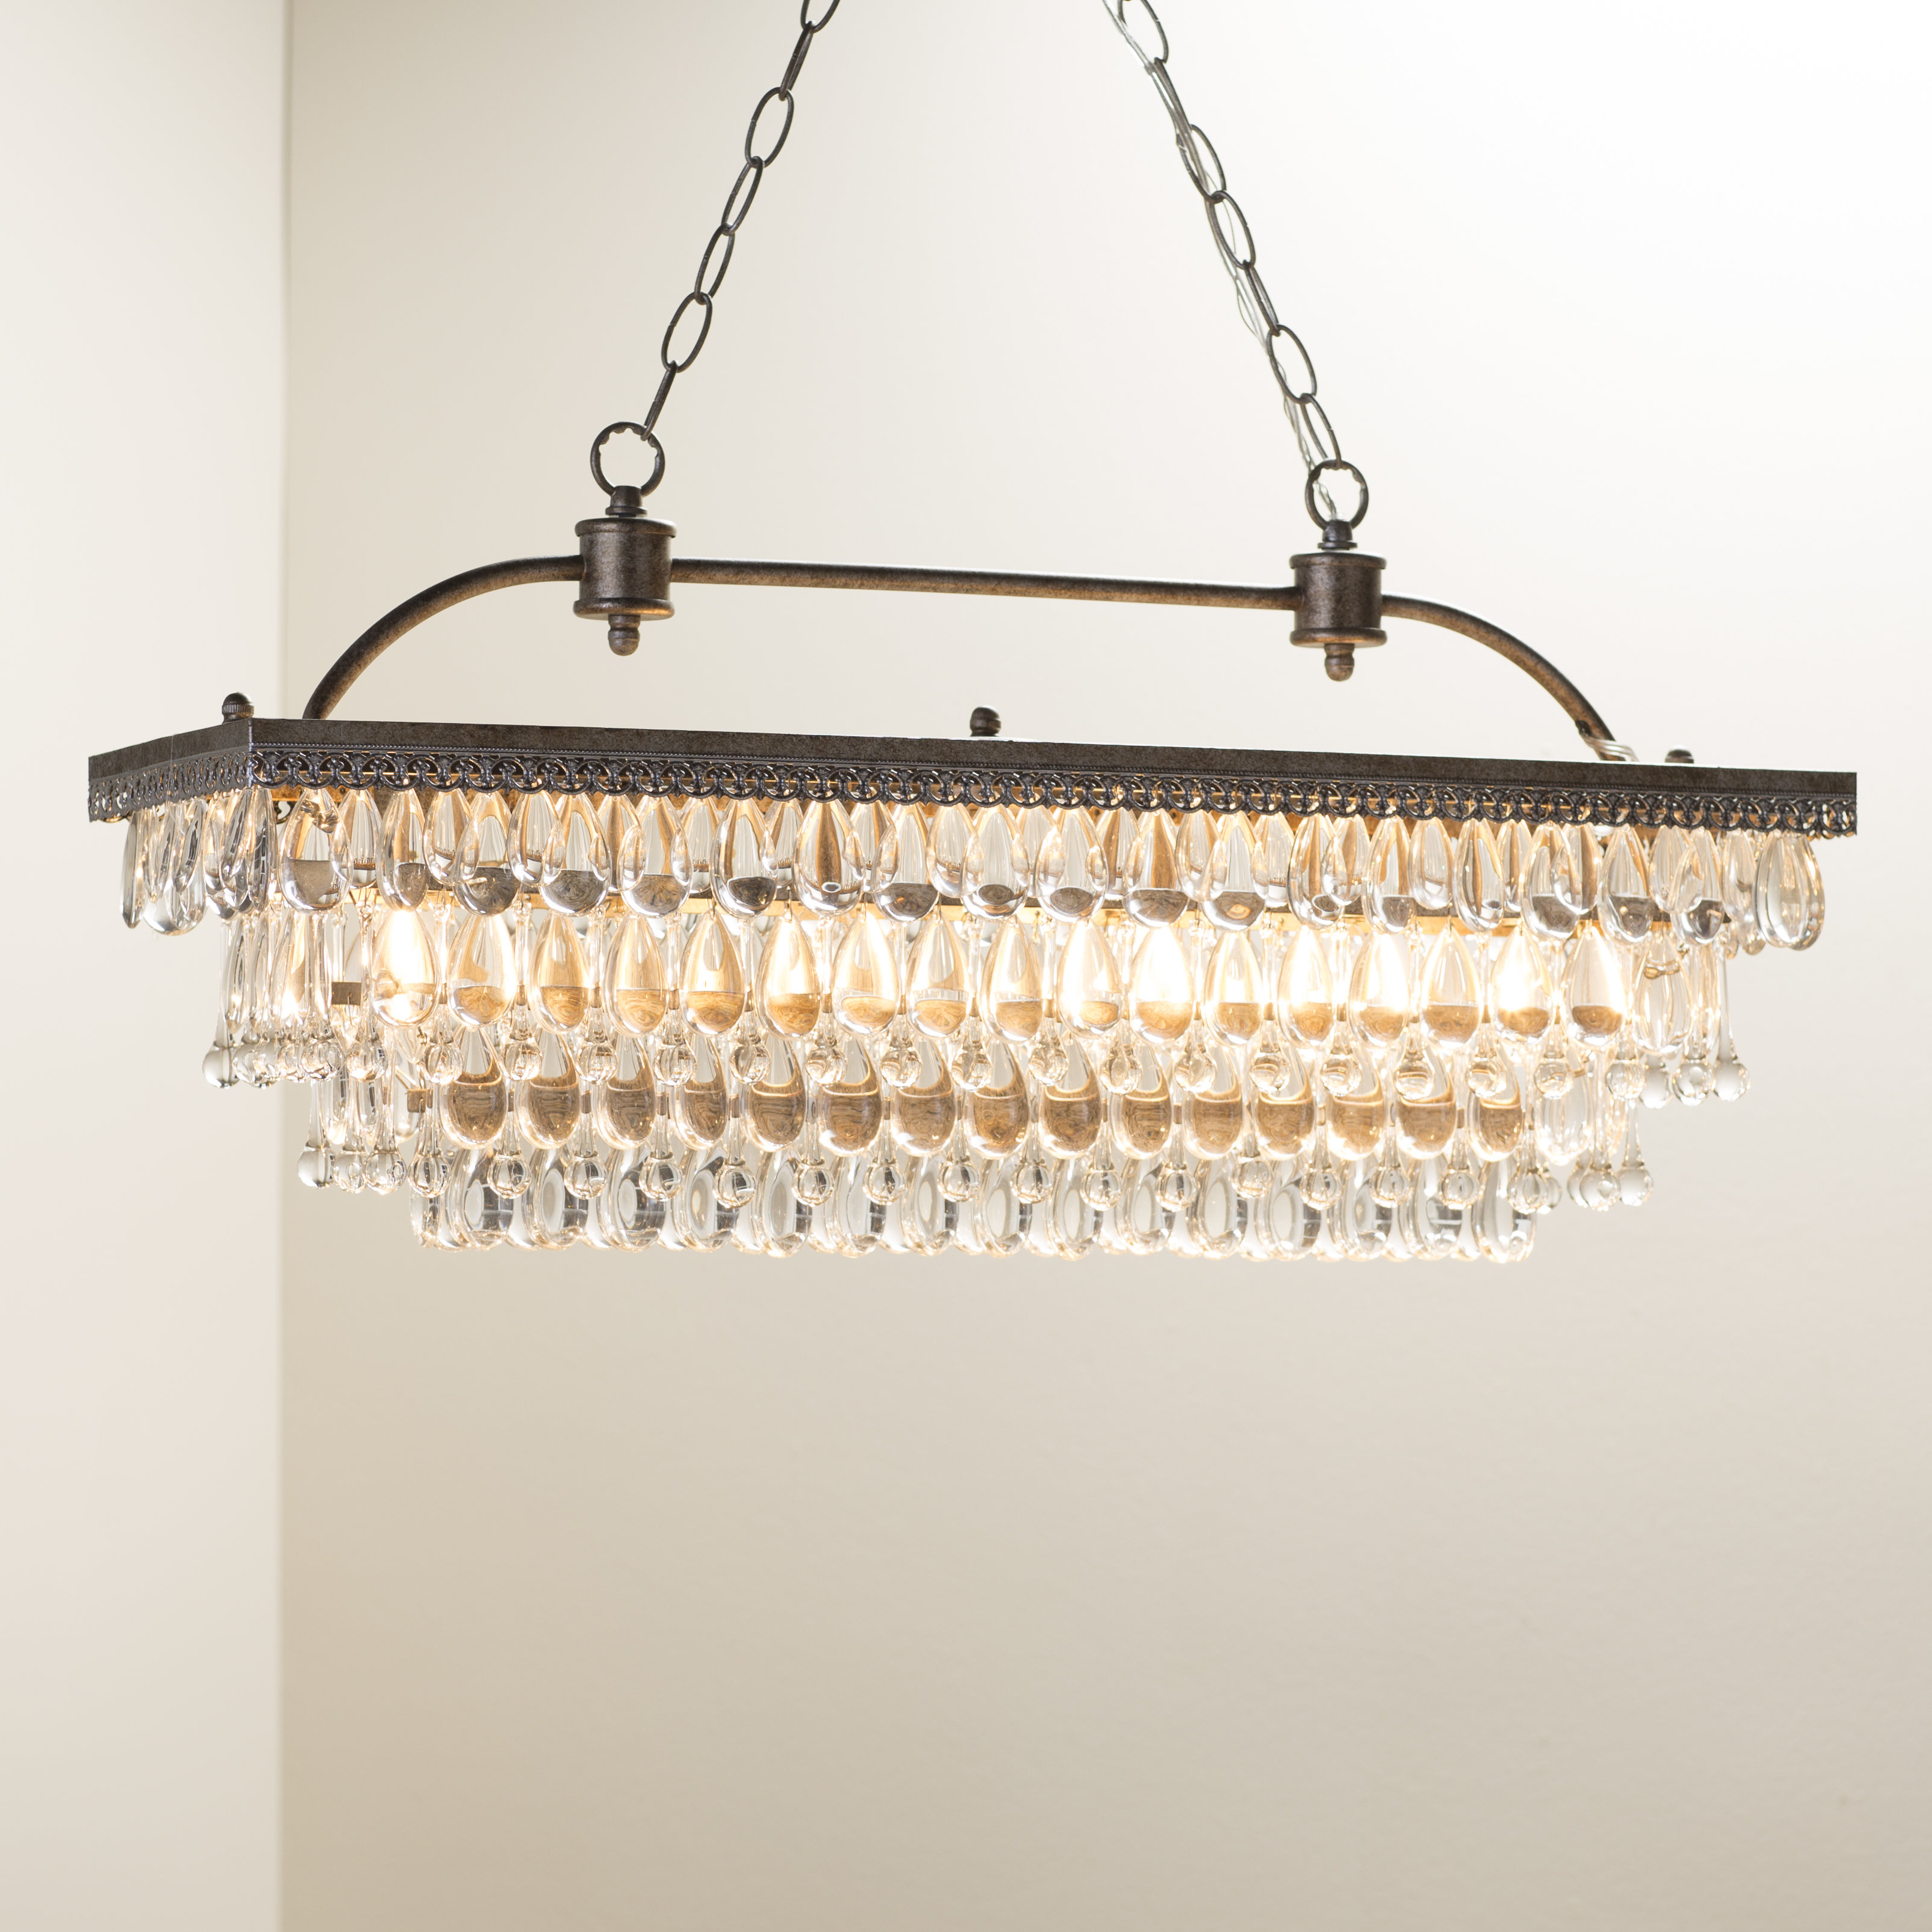 Best And Newest Mckinsey 6 Light Kitchen Island Pendant Intended For Gracelyn 8 Light Kitchen Island Pendants (View 3 of 25)